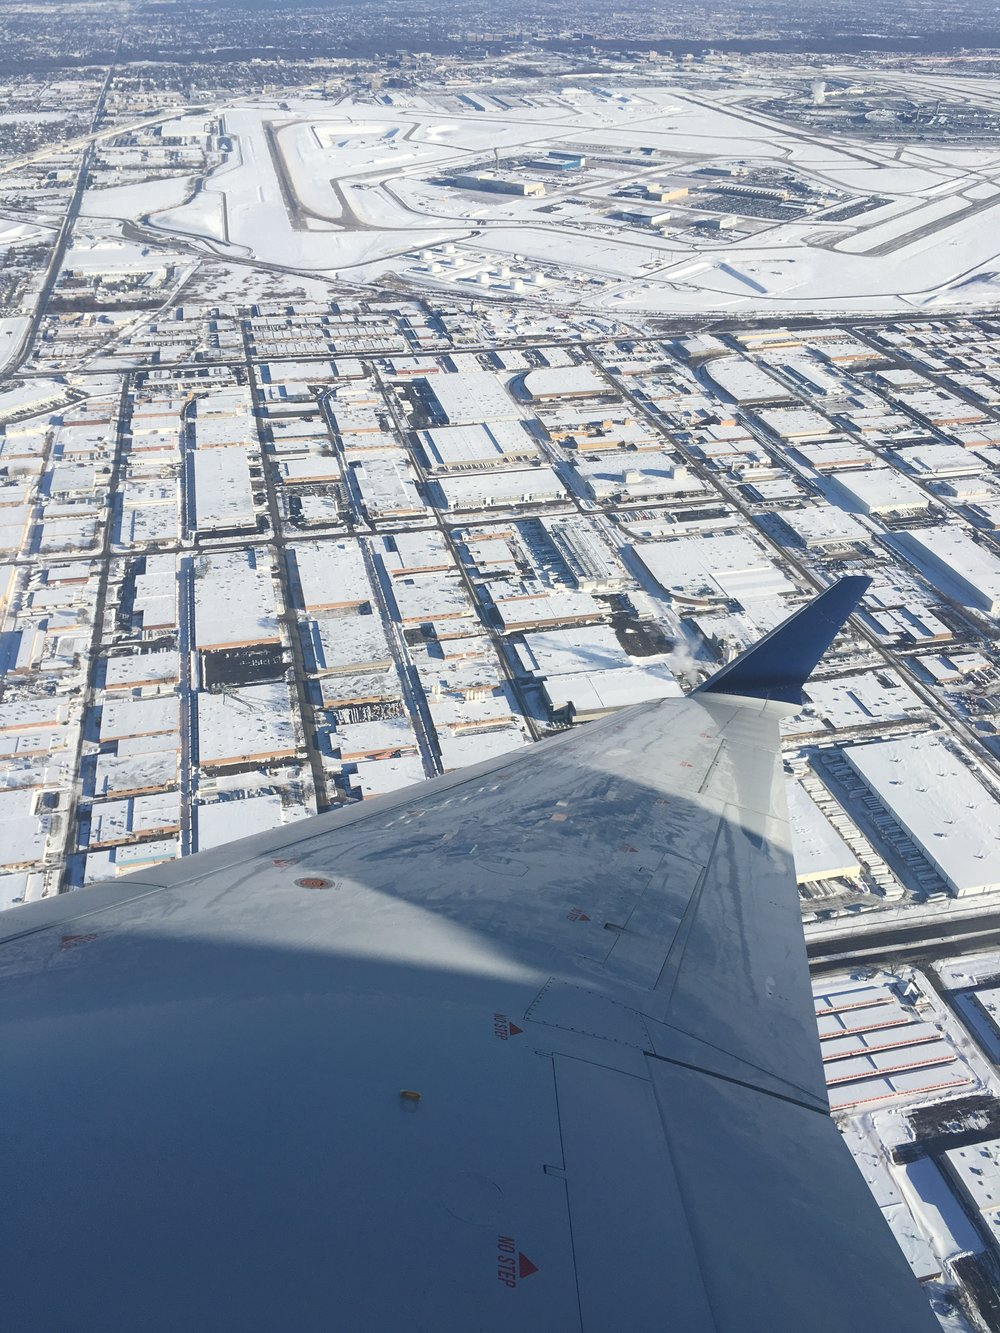 On our way home from a snowy Chicago.